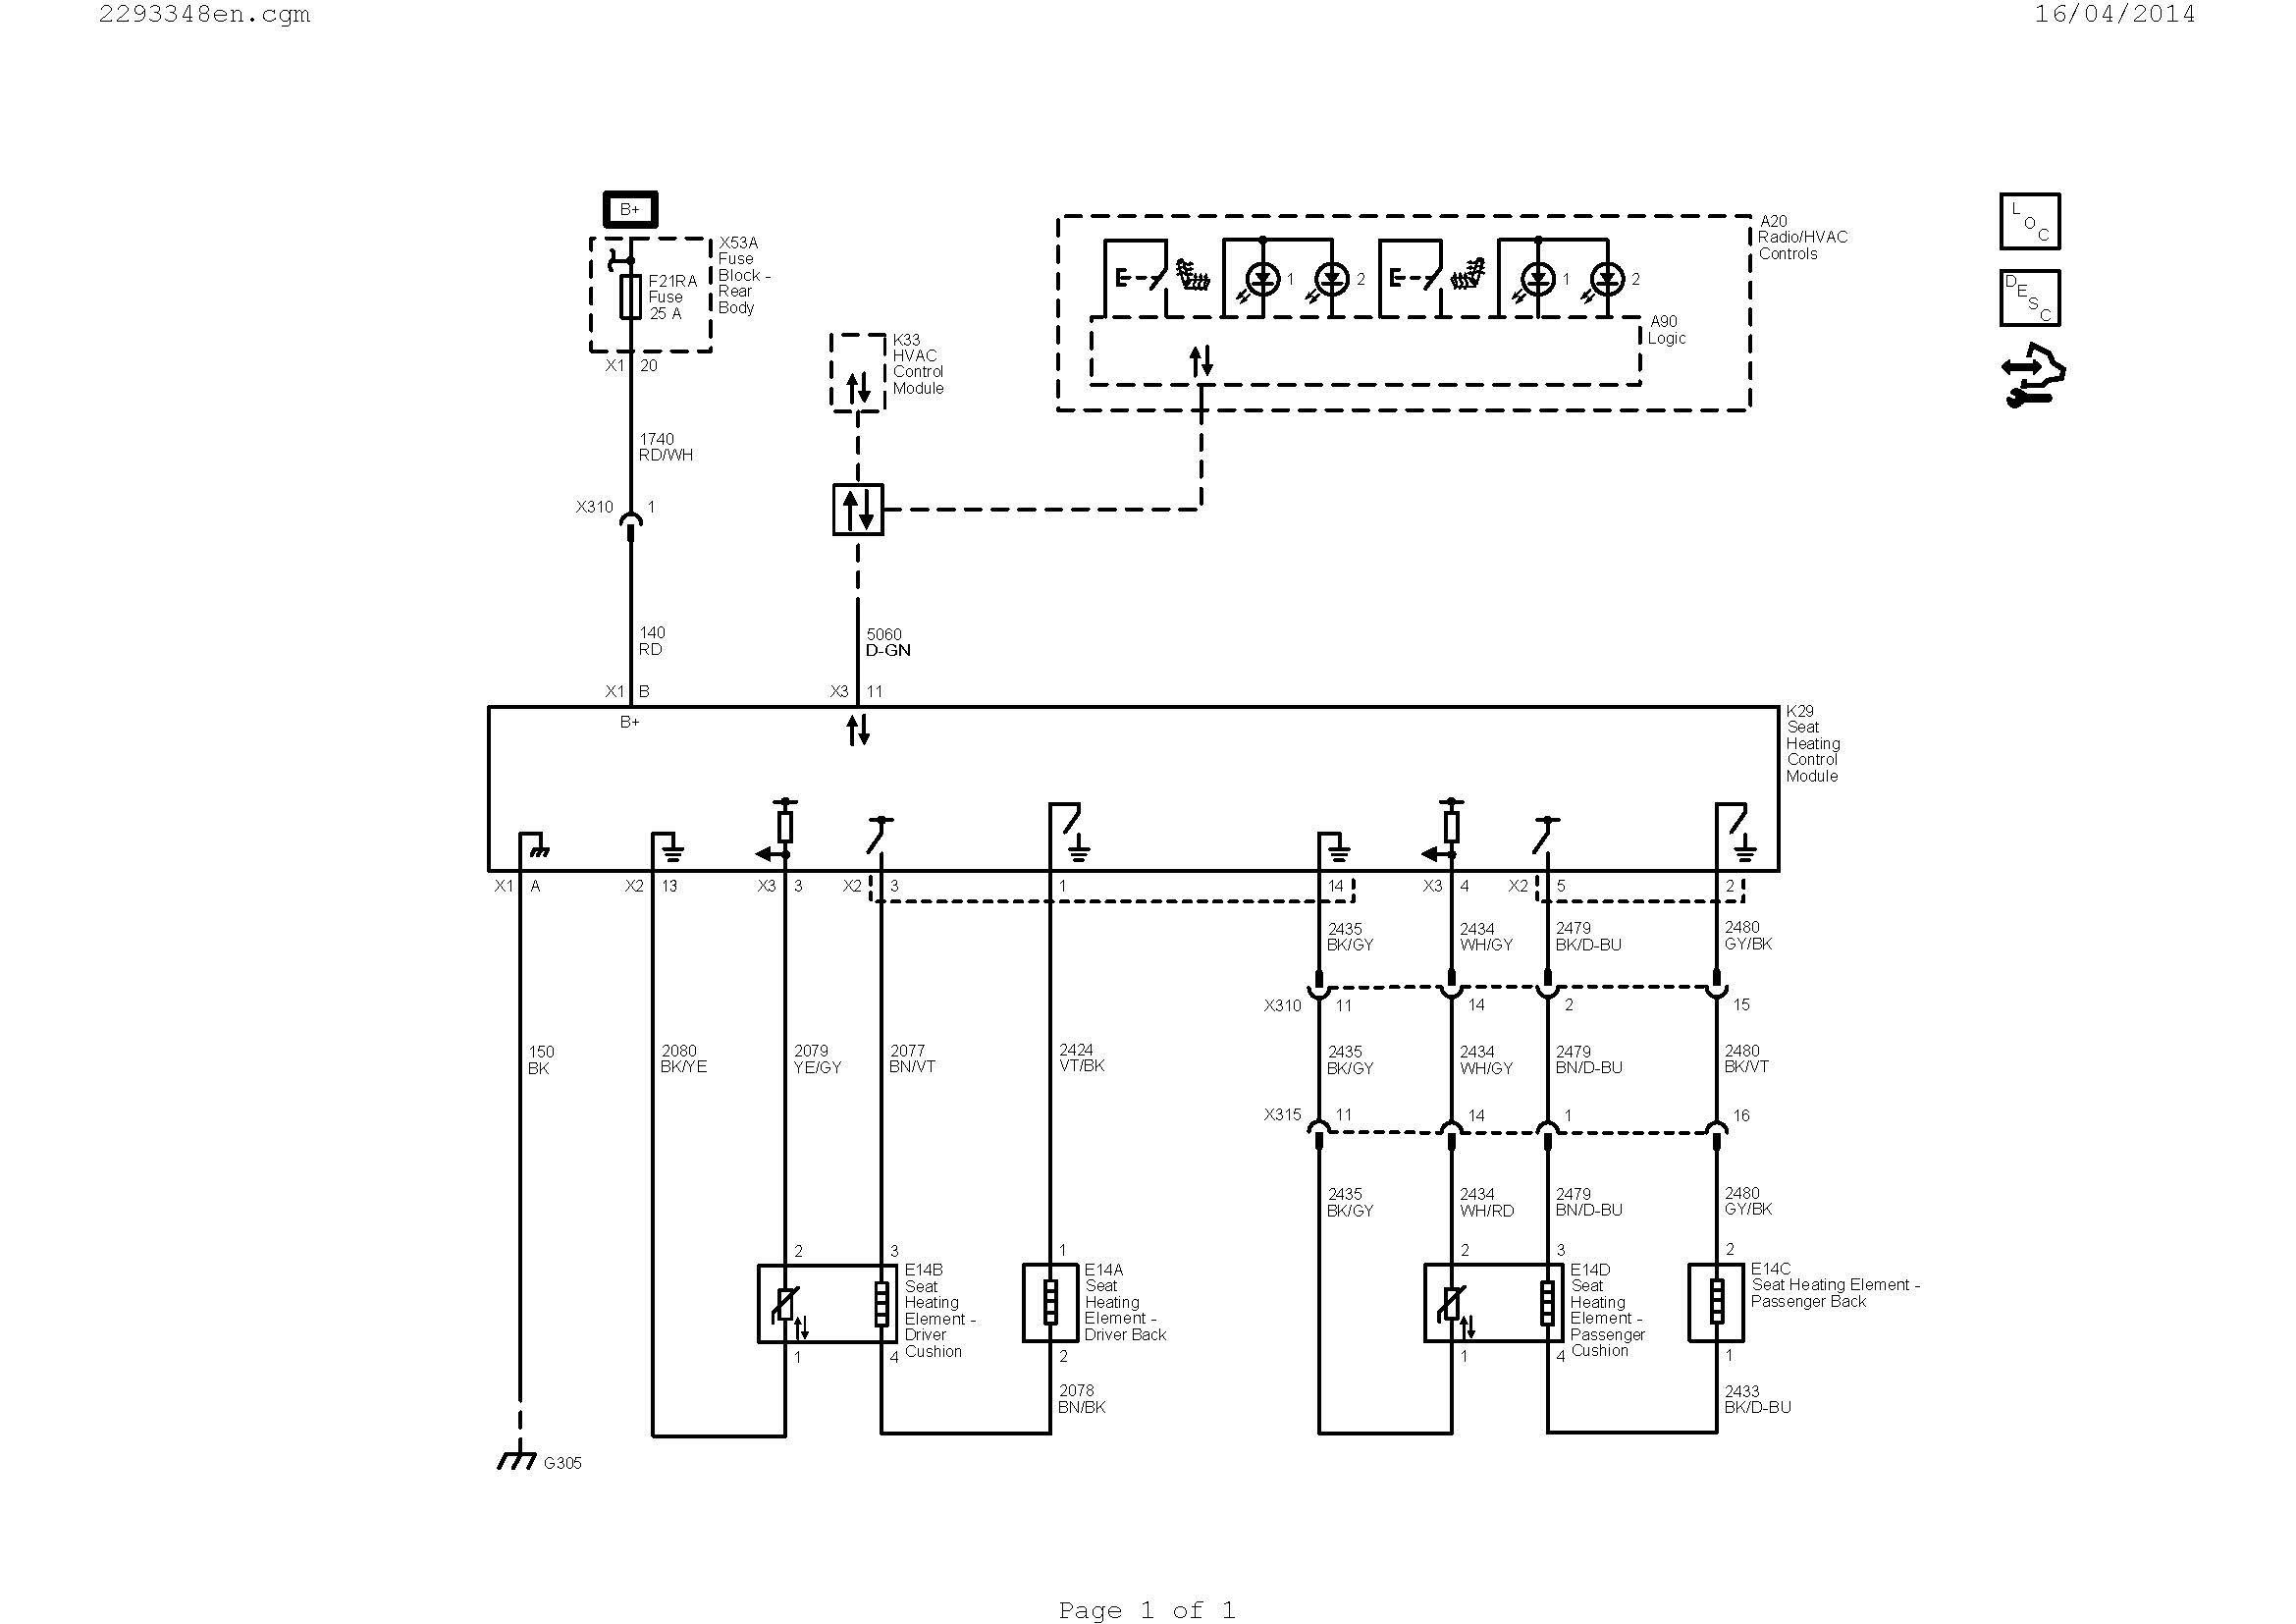 Wiring A Ac thermostat Diagram New Wiring Diagram Ac Valid Hvac Diagram Best Hvac Diagram 0d